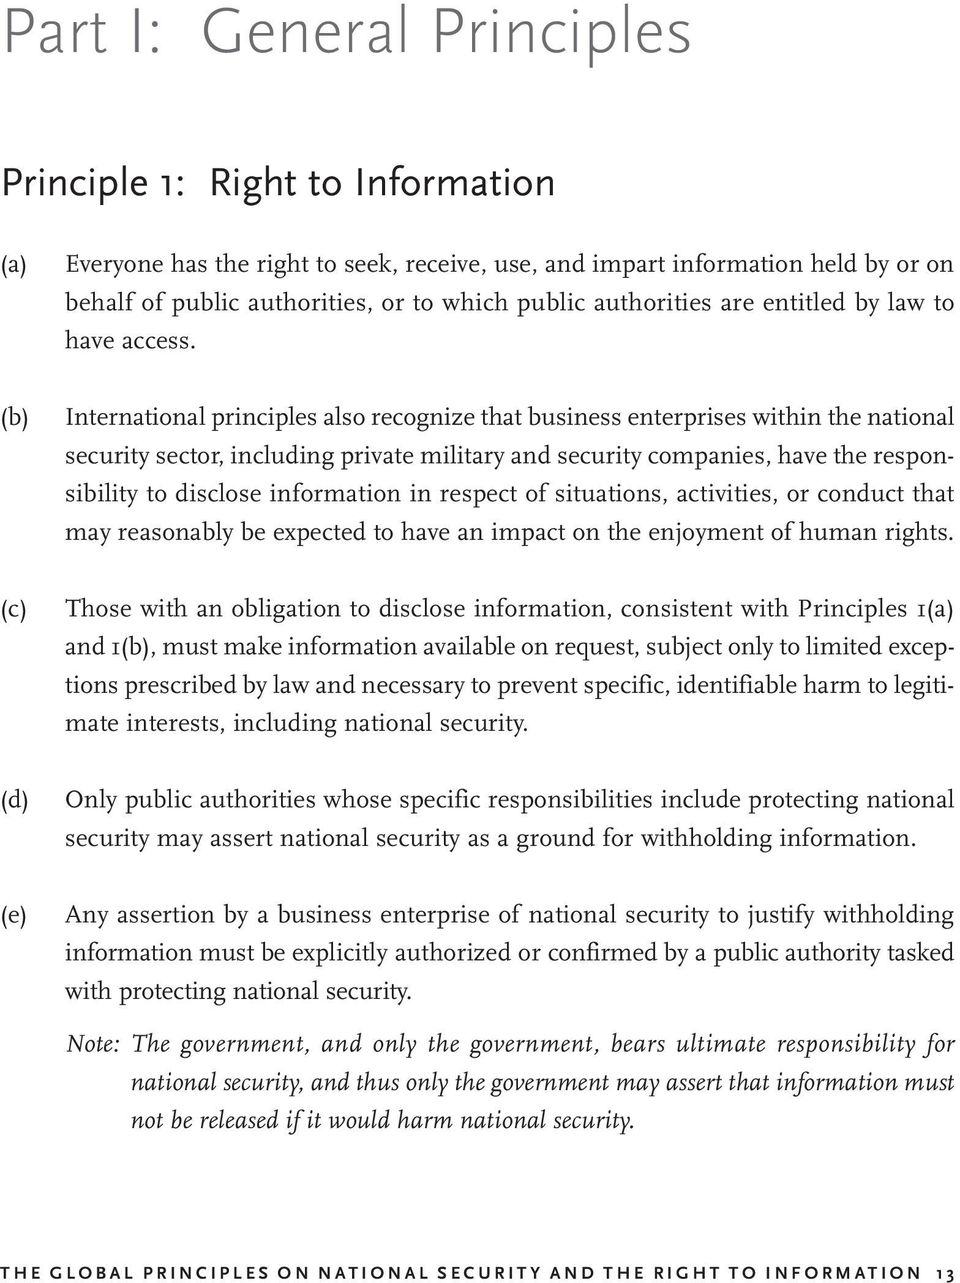 (b) International principles also recognize that business enterprises within the national security sector, including private military and security companies, have the responsibility to disclose